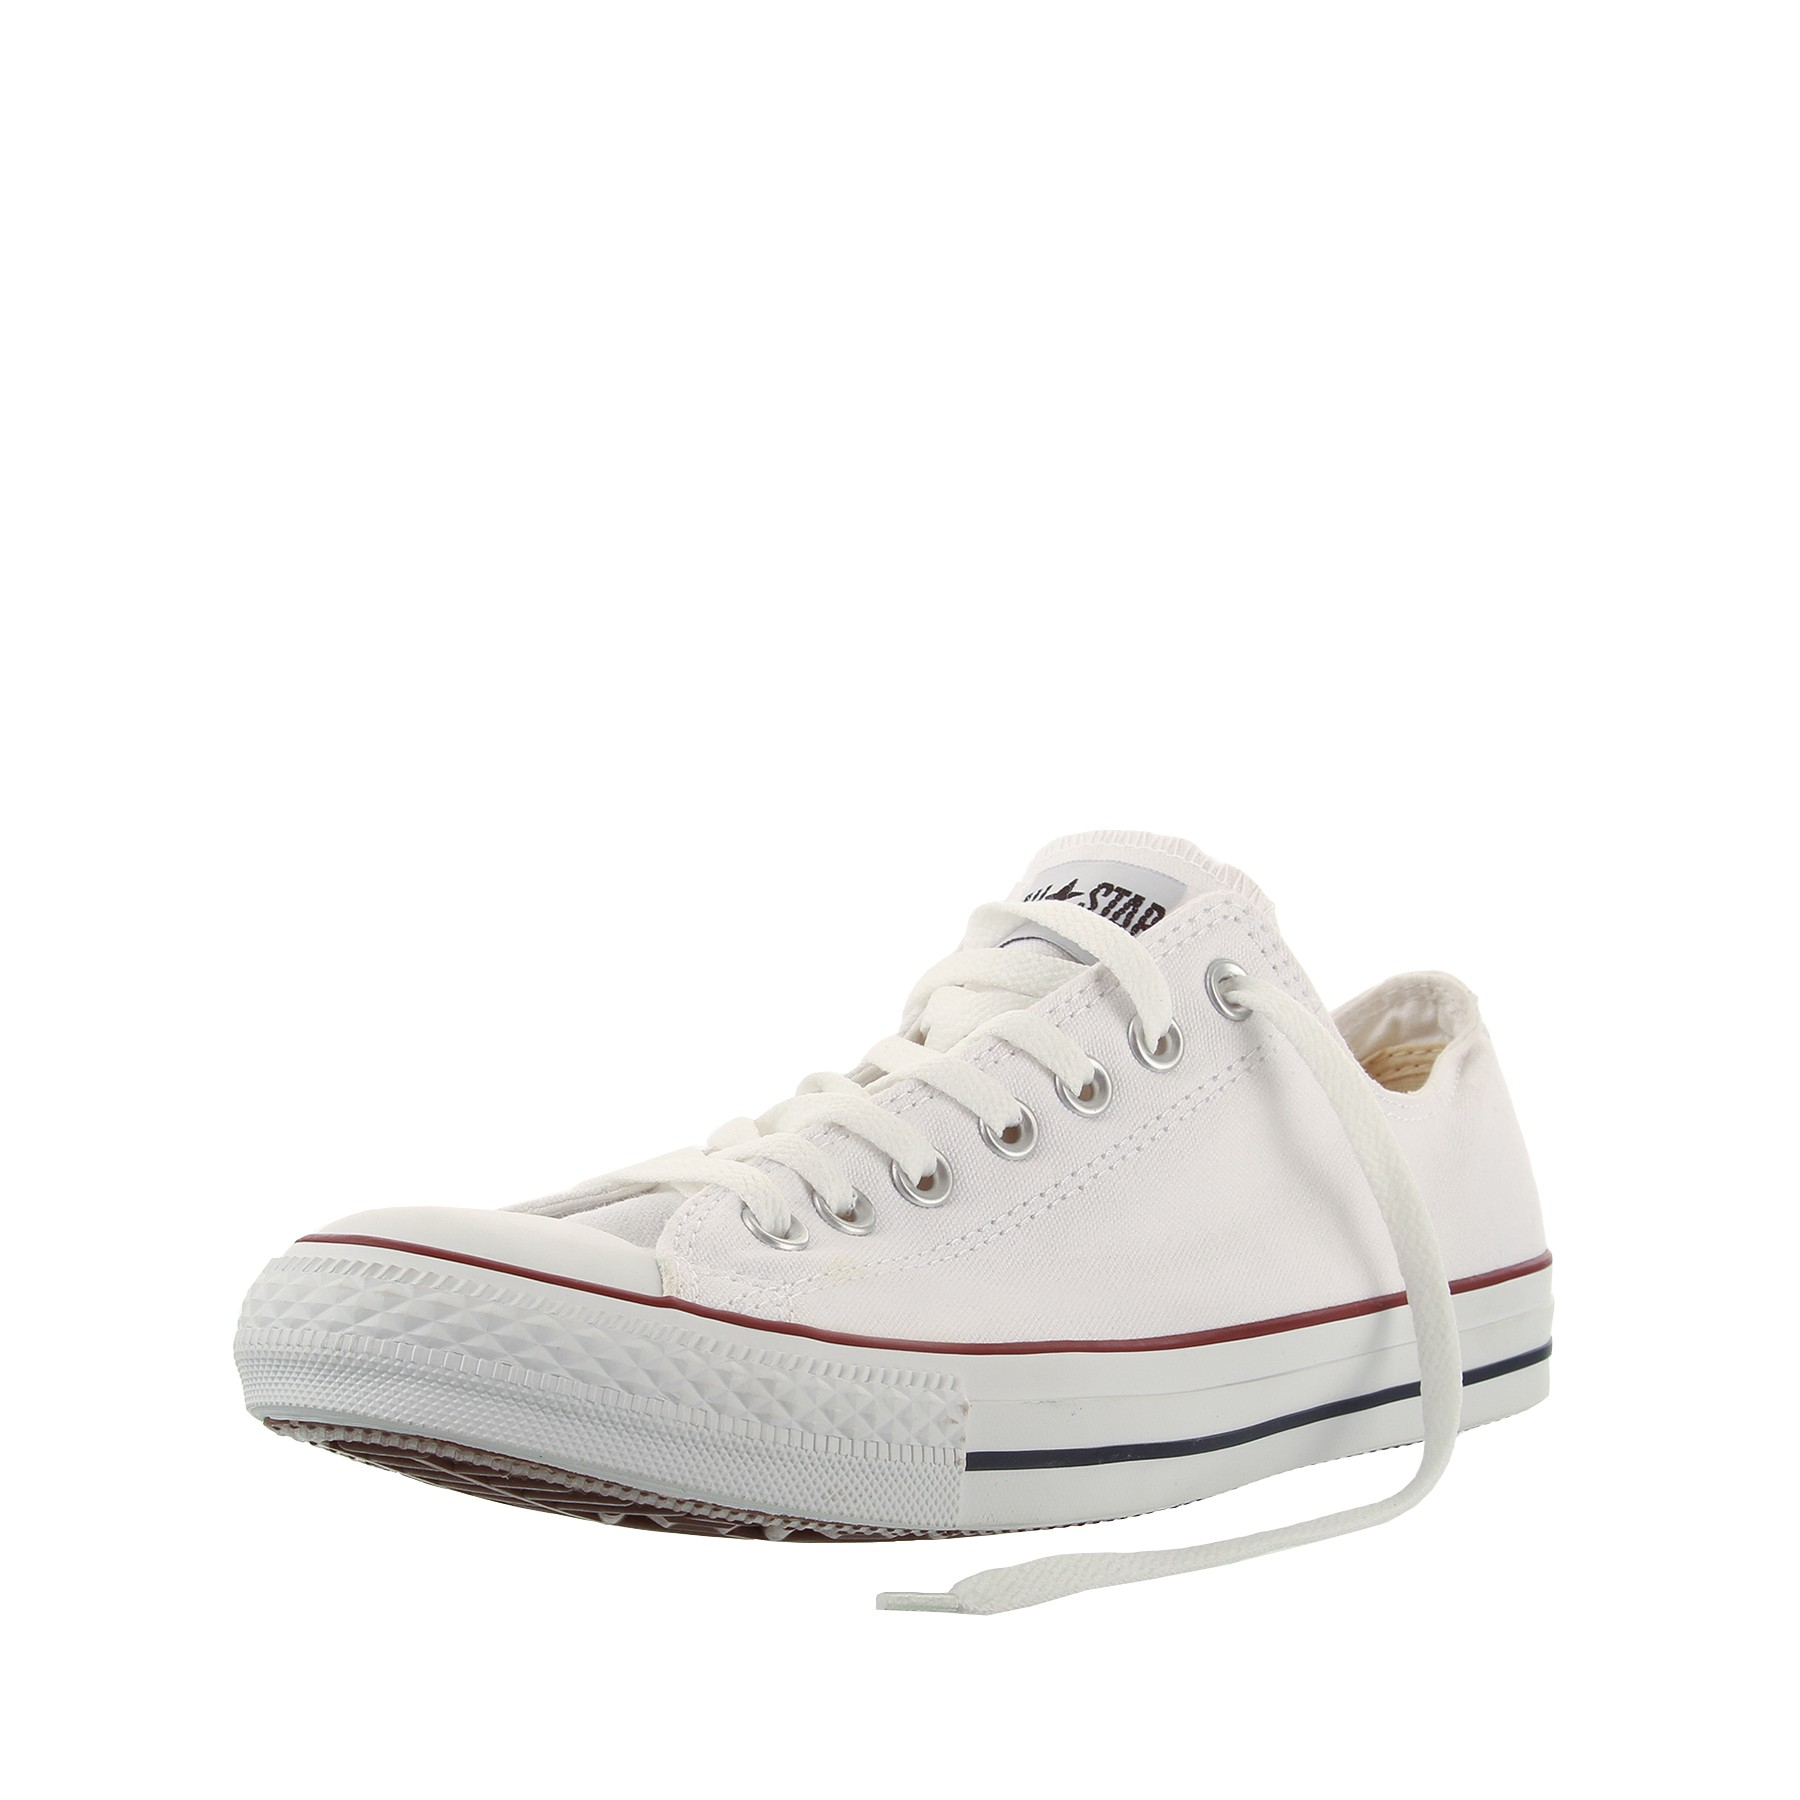 M7652 CT CHUCK TAYLOR AS CORE/OPTICAL WHITE Bild https://cdn03.plentymarkets.com/zsy4vjx32p87/item/images/4271/full/M7652-ama-01.JPG